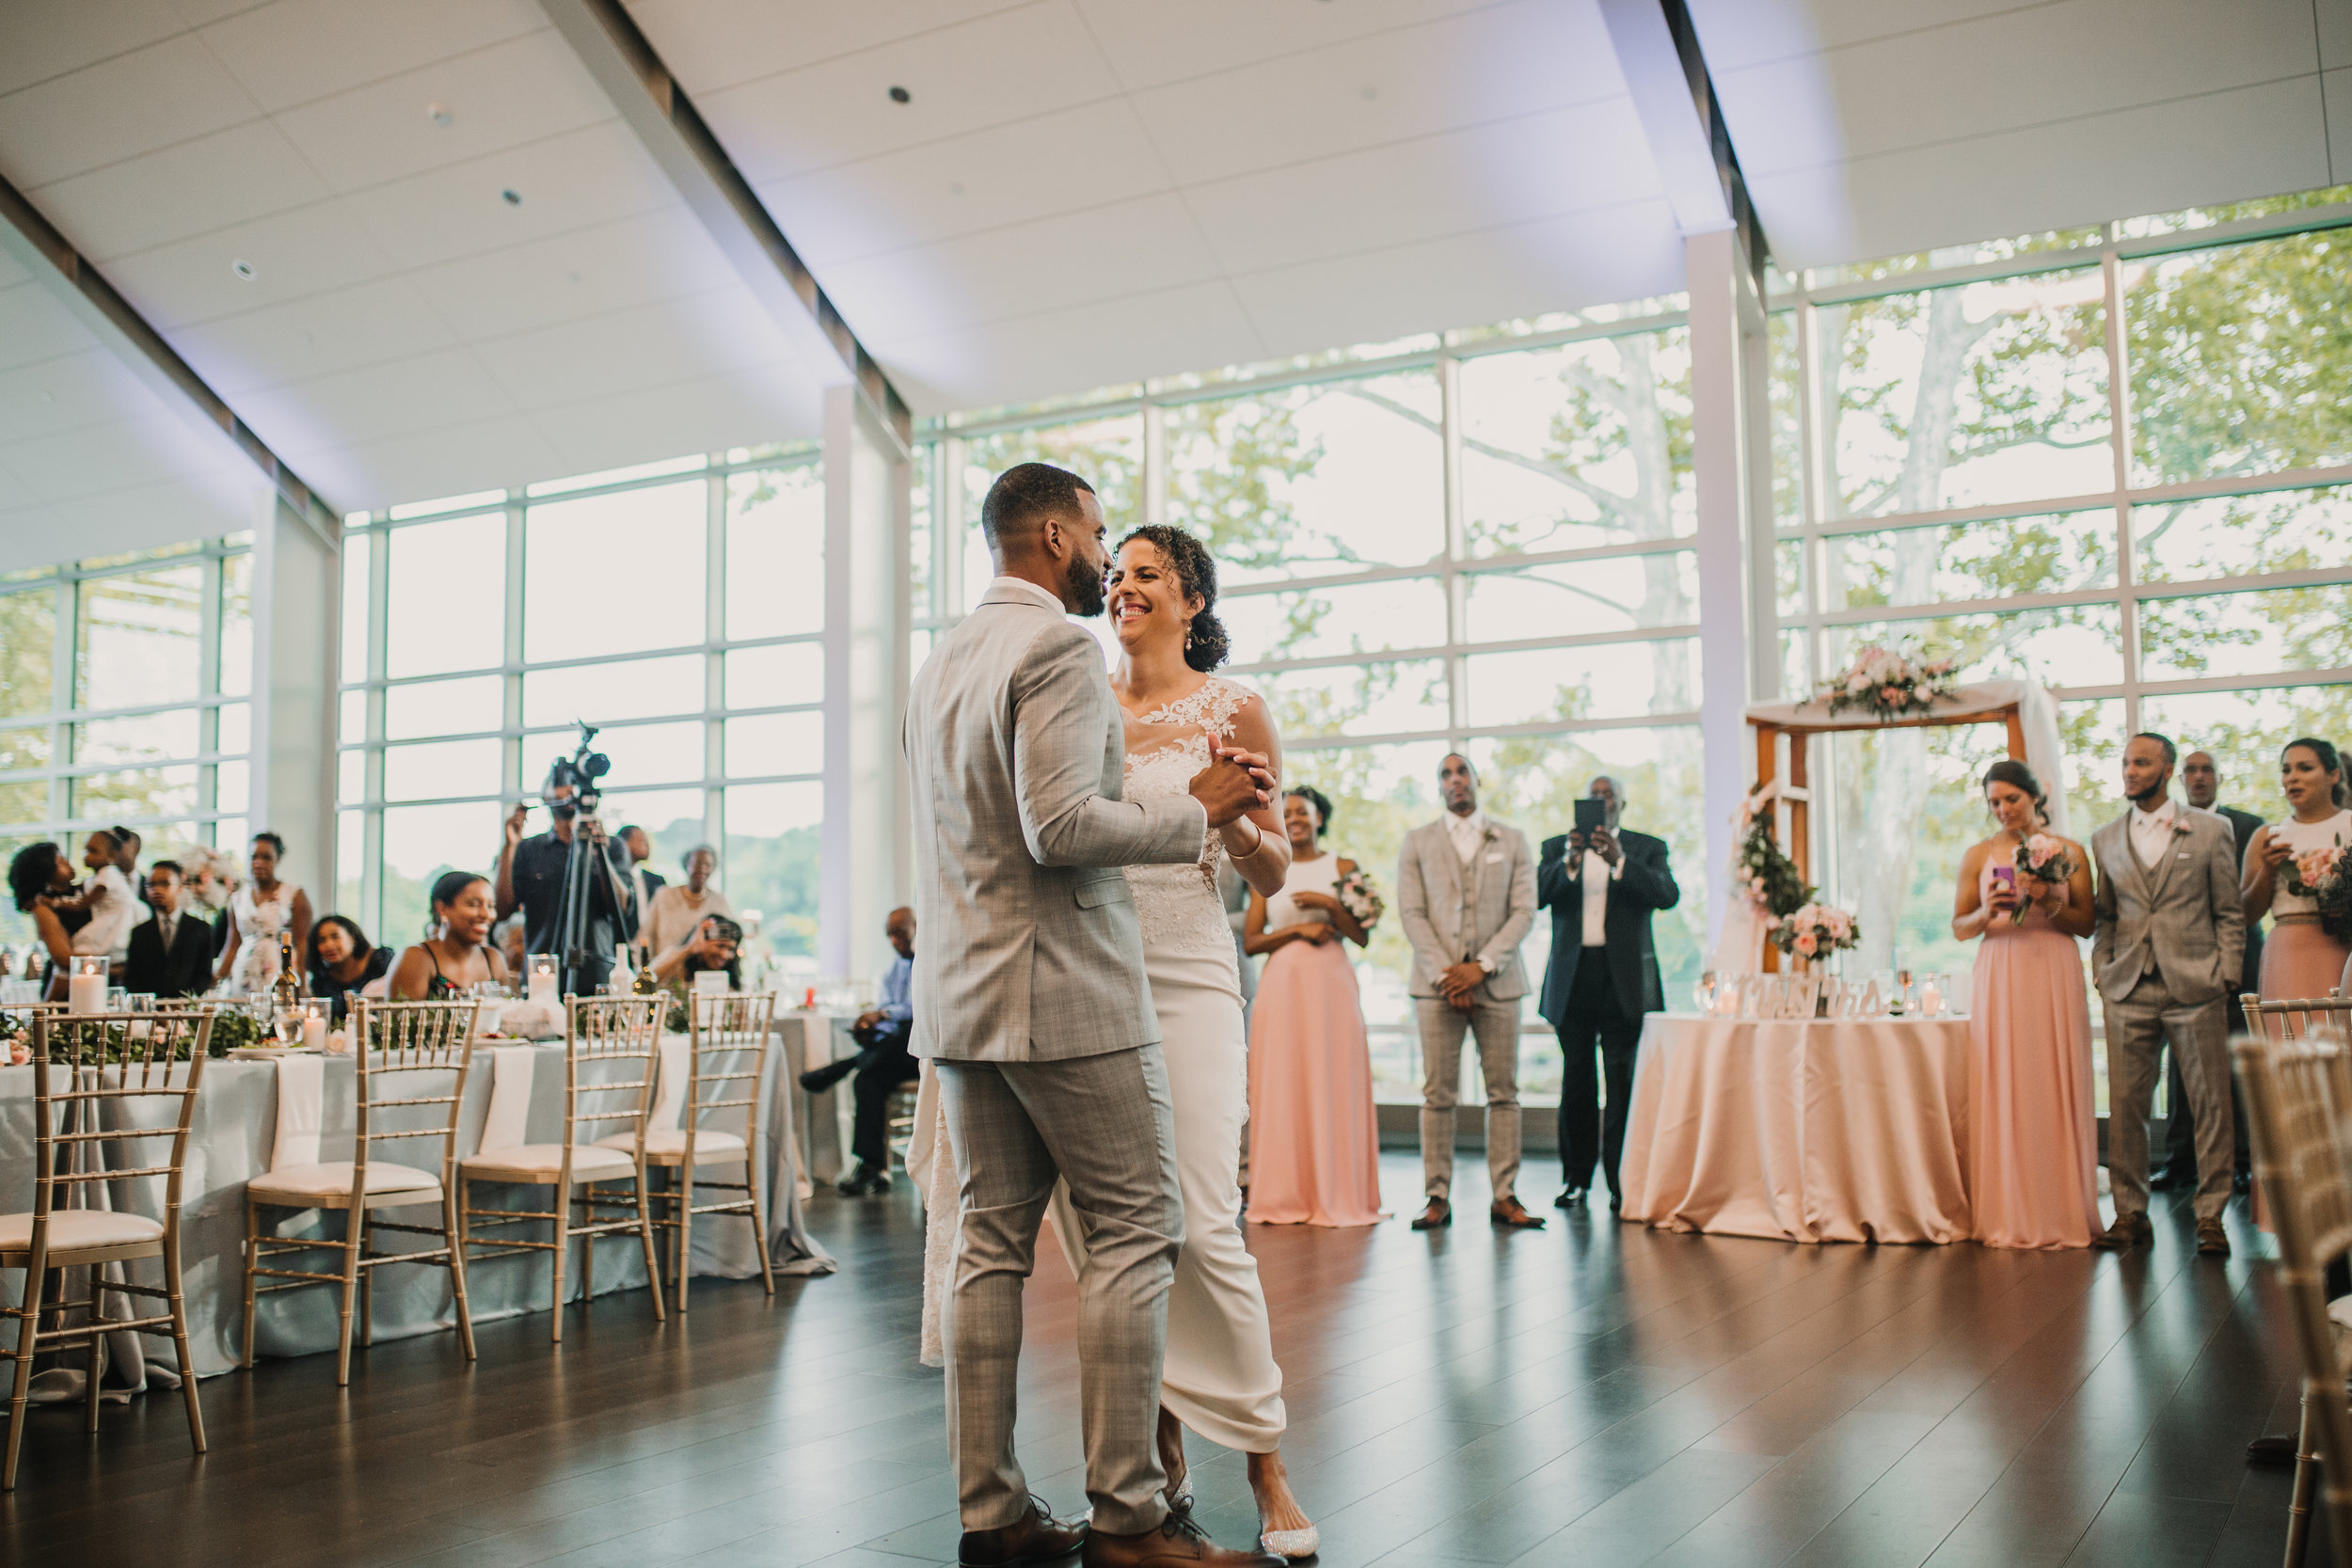 - There's nothing I love more than a lively and crowded dance floor, and their guests brought that to the table and then some. The bridesmaids and groomsmen put the party in wedding party, hannnnds down.